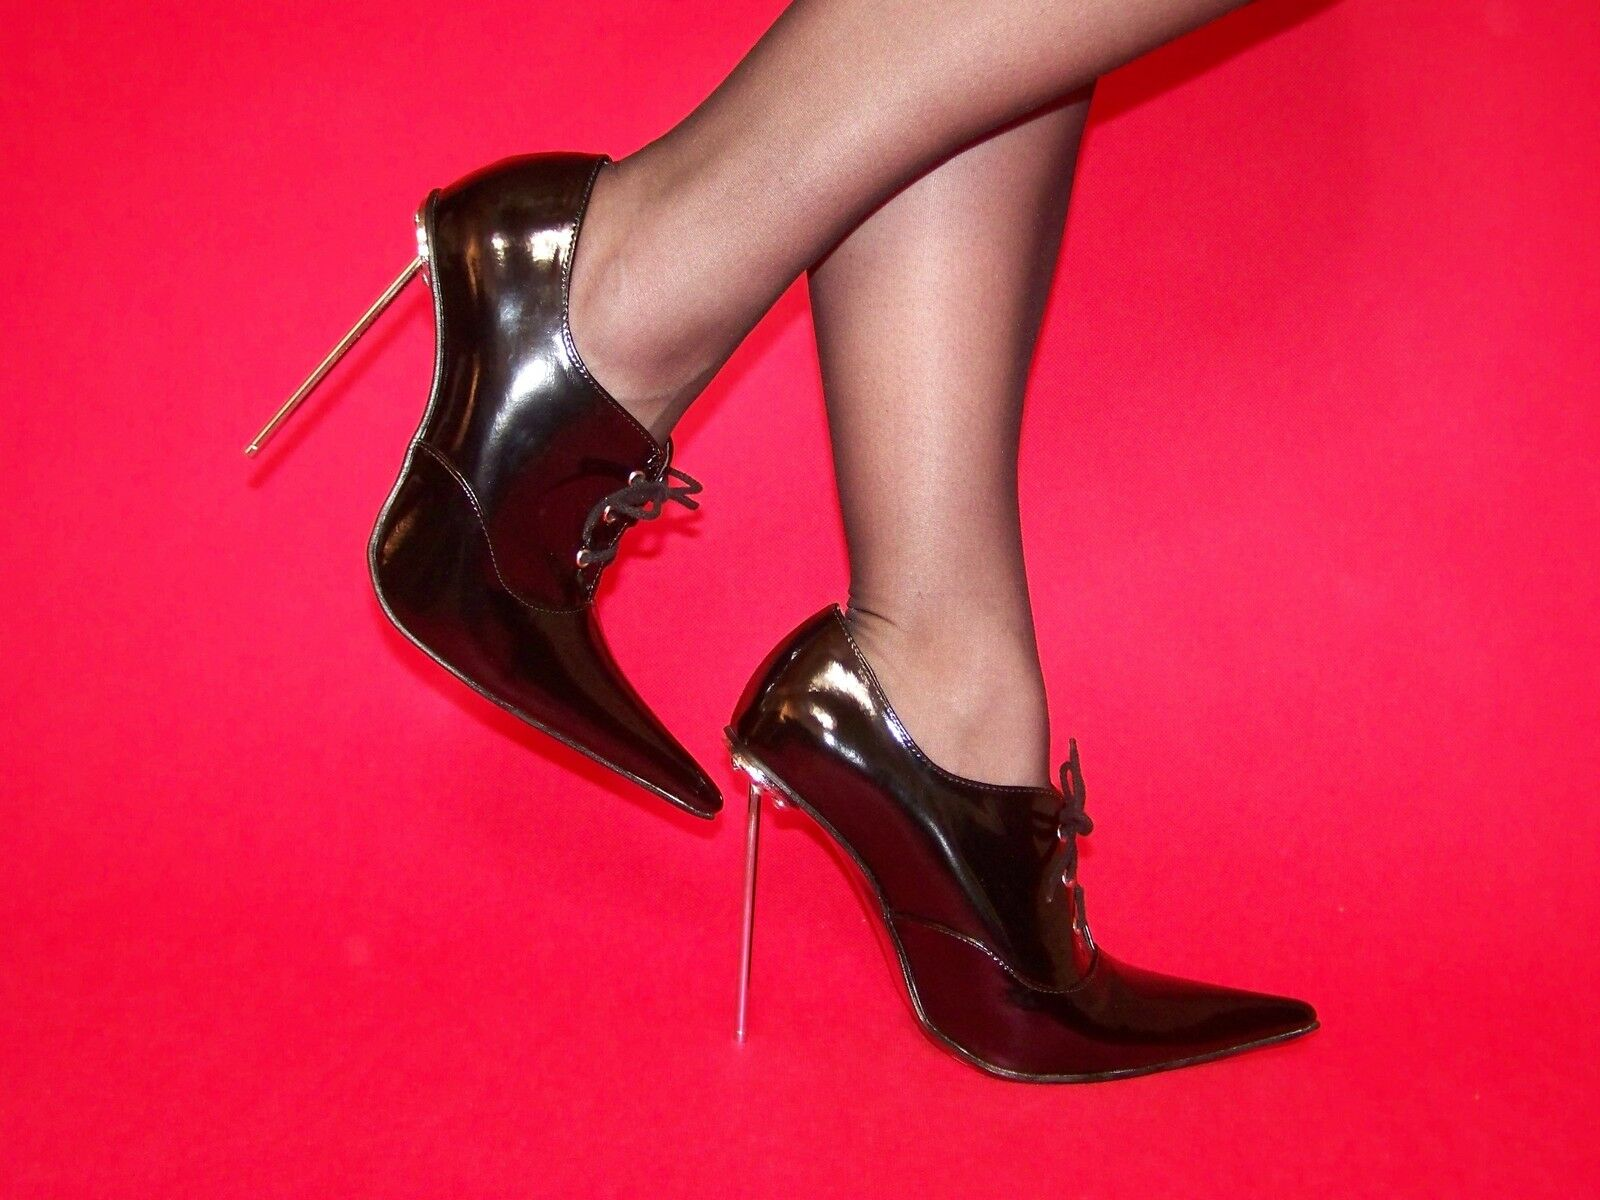 BLACK OR ROT PATENT LEATHER PUMPS SIZE 5-16 HEELS-5,5' - PRODUCER POLAND